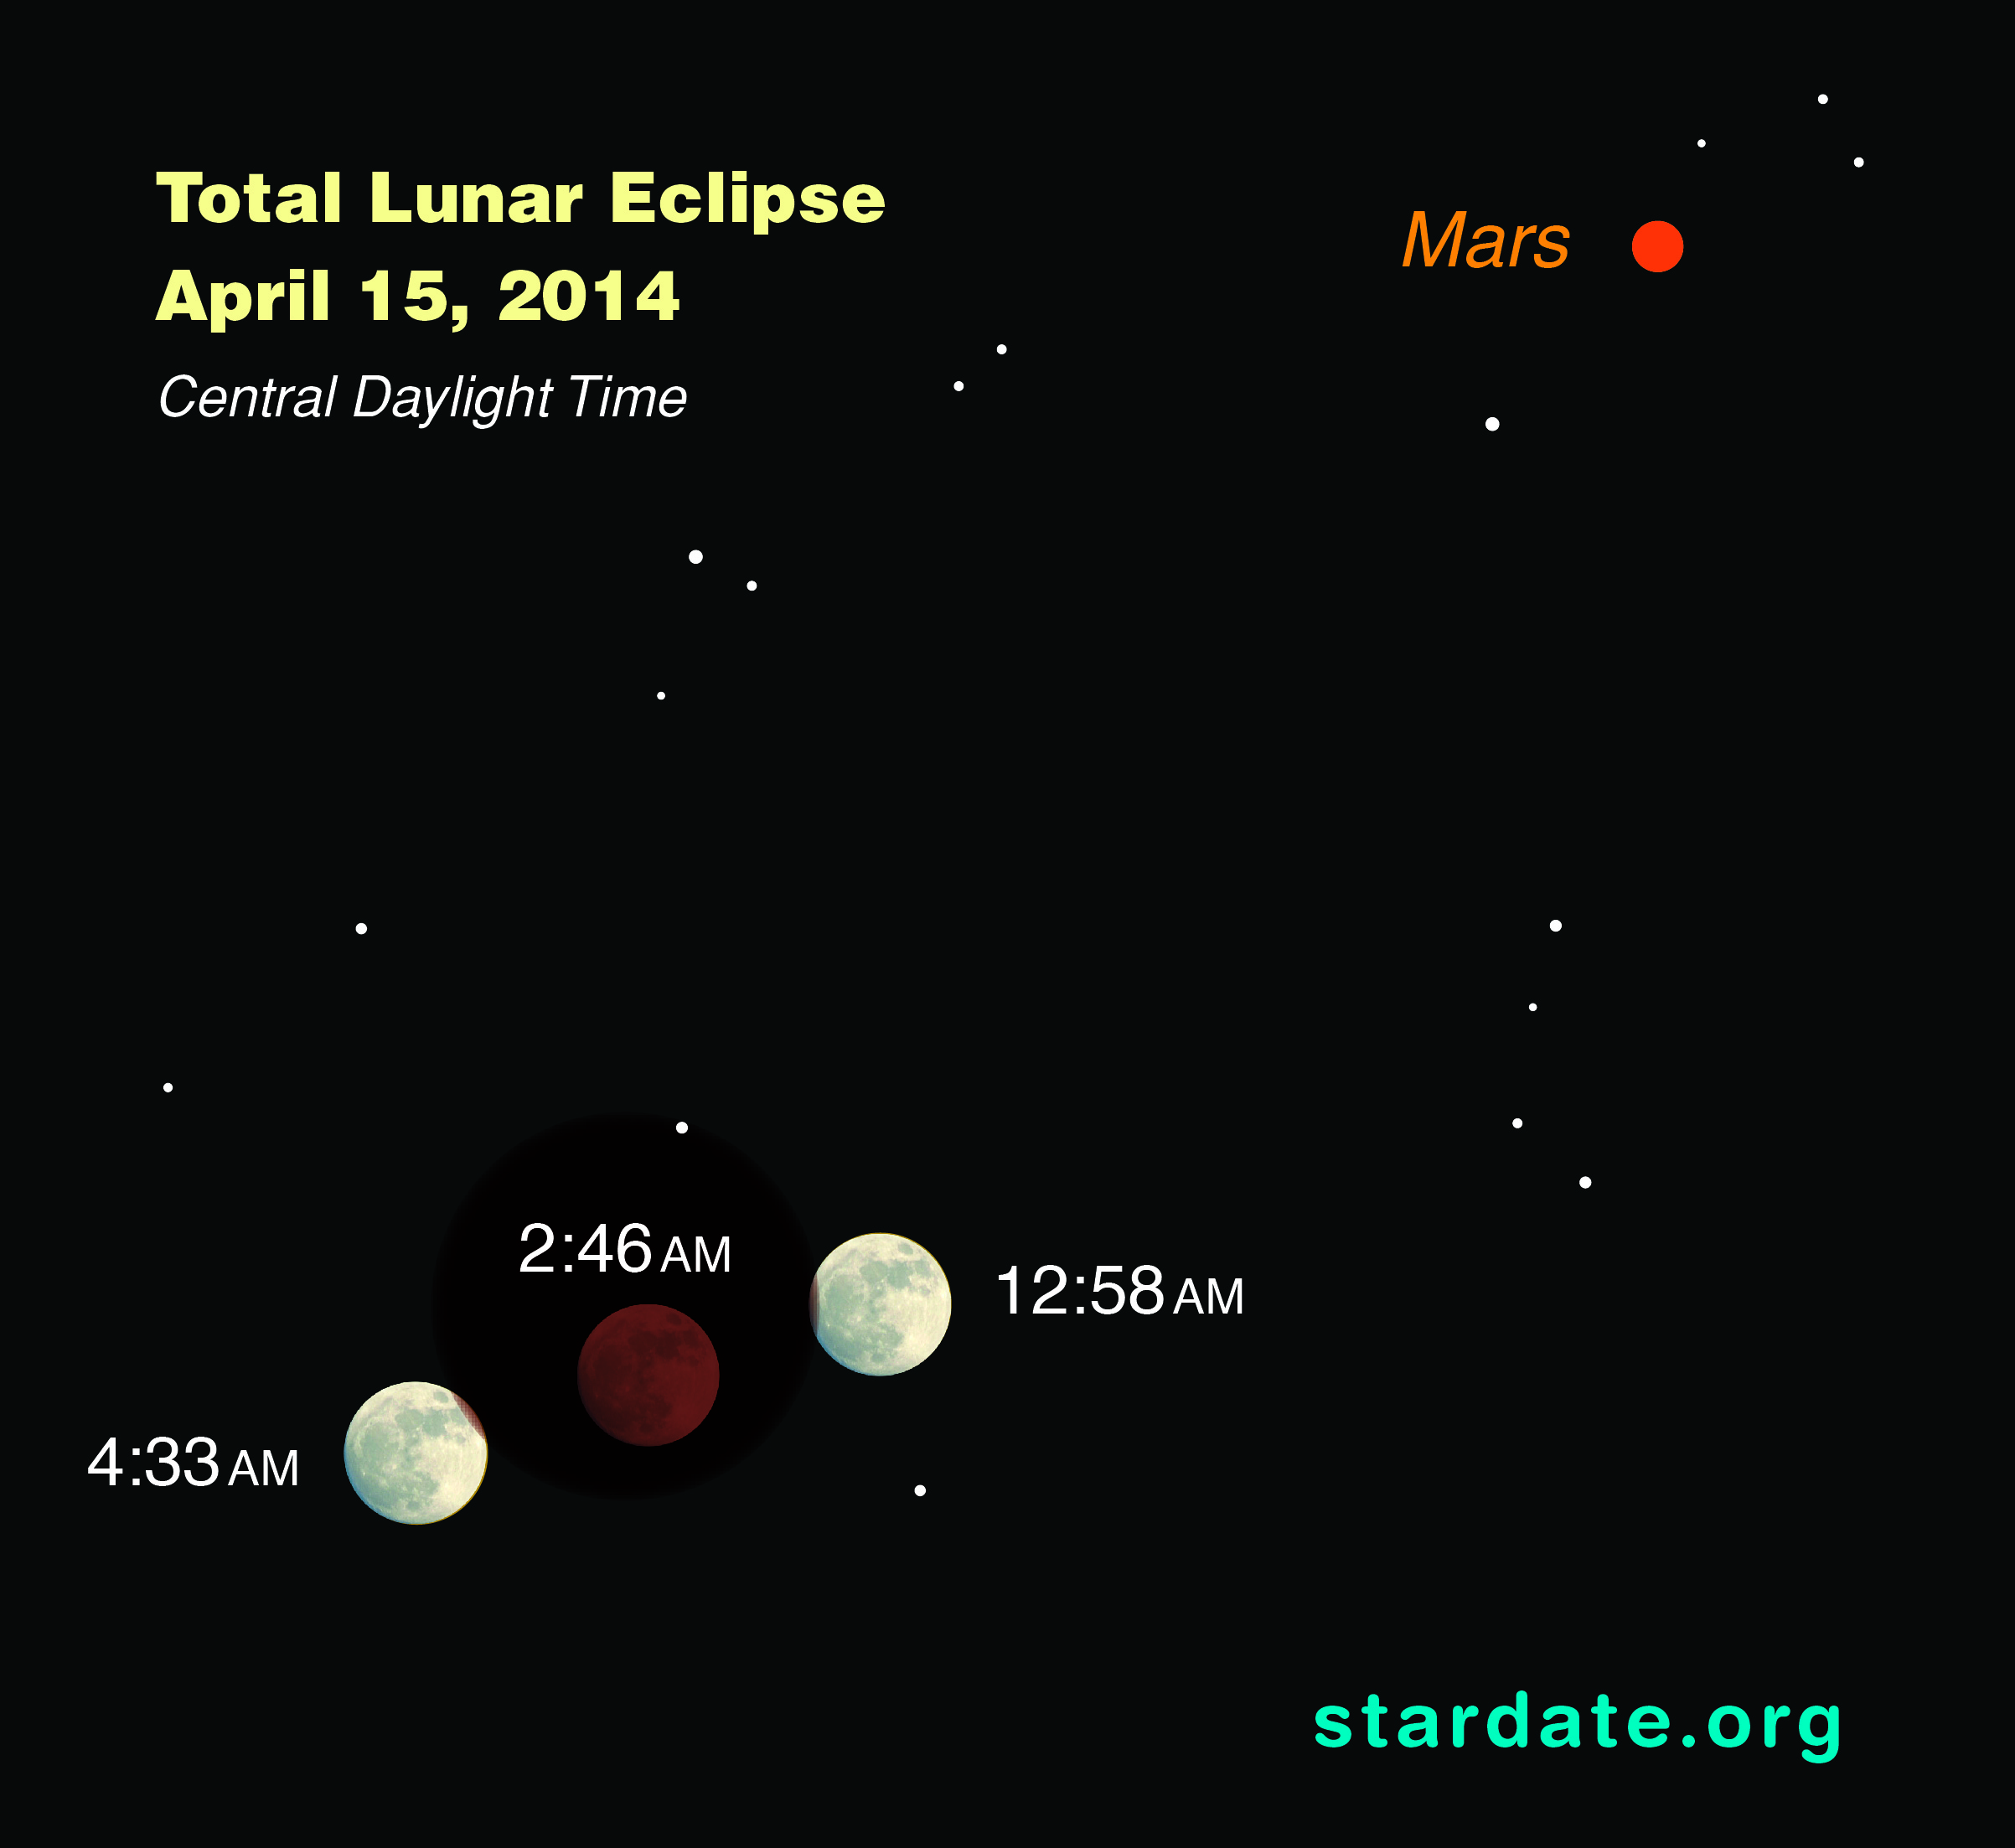 Total Lunar Eclipse and Mars: April 15, 2014